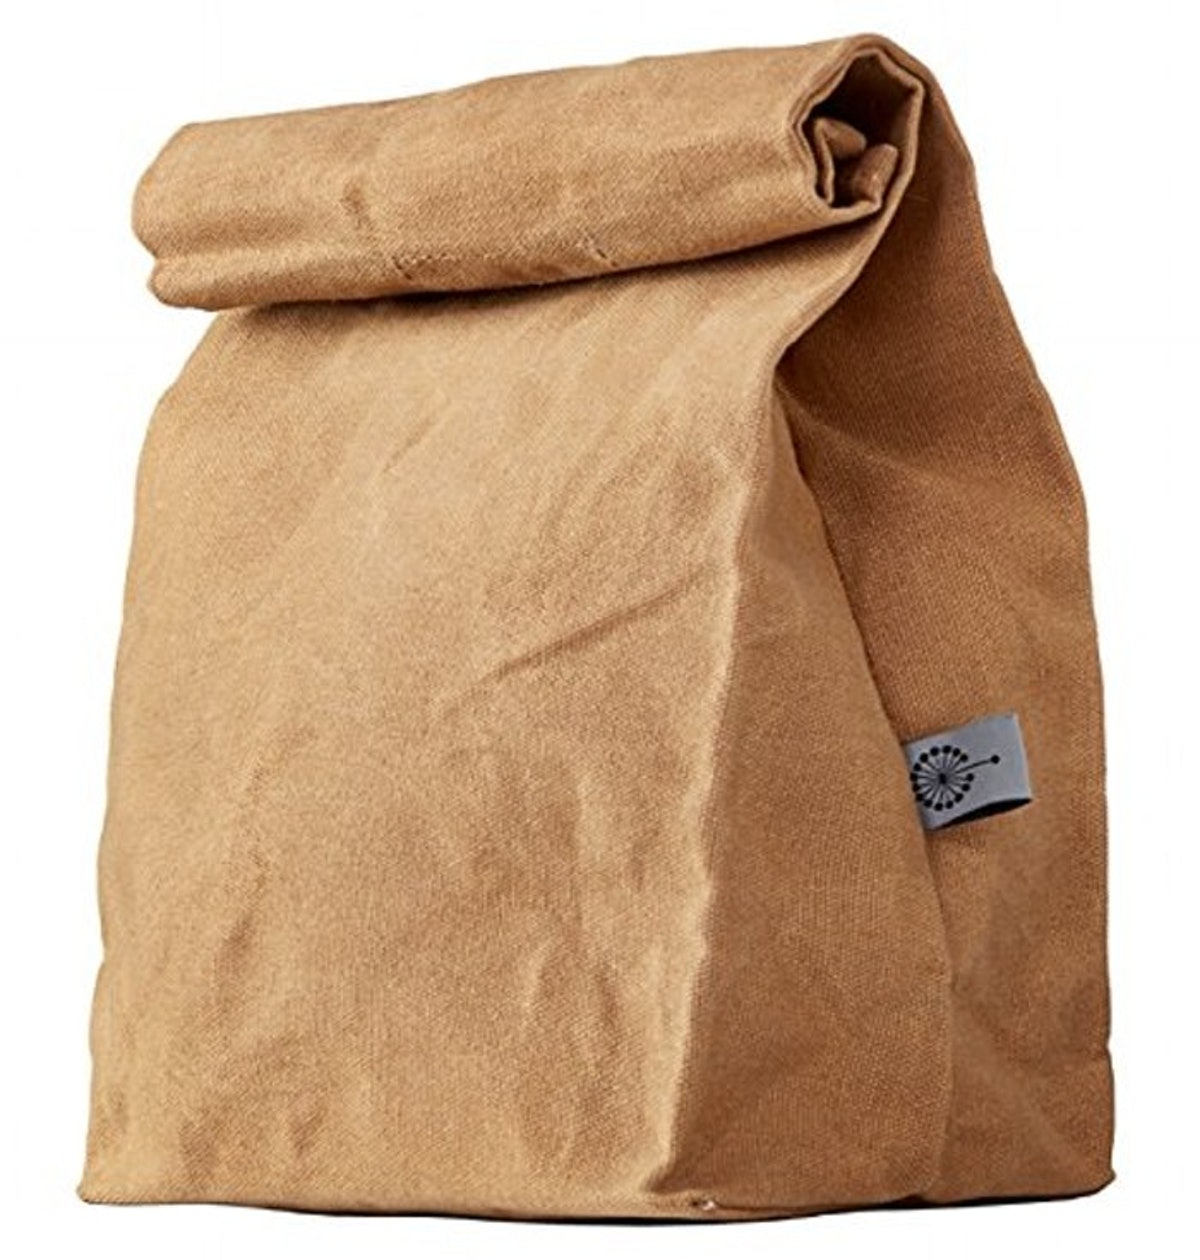 COLONY CO. Waxed Canvas Lunch Bag